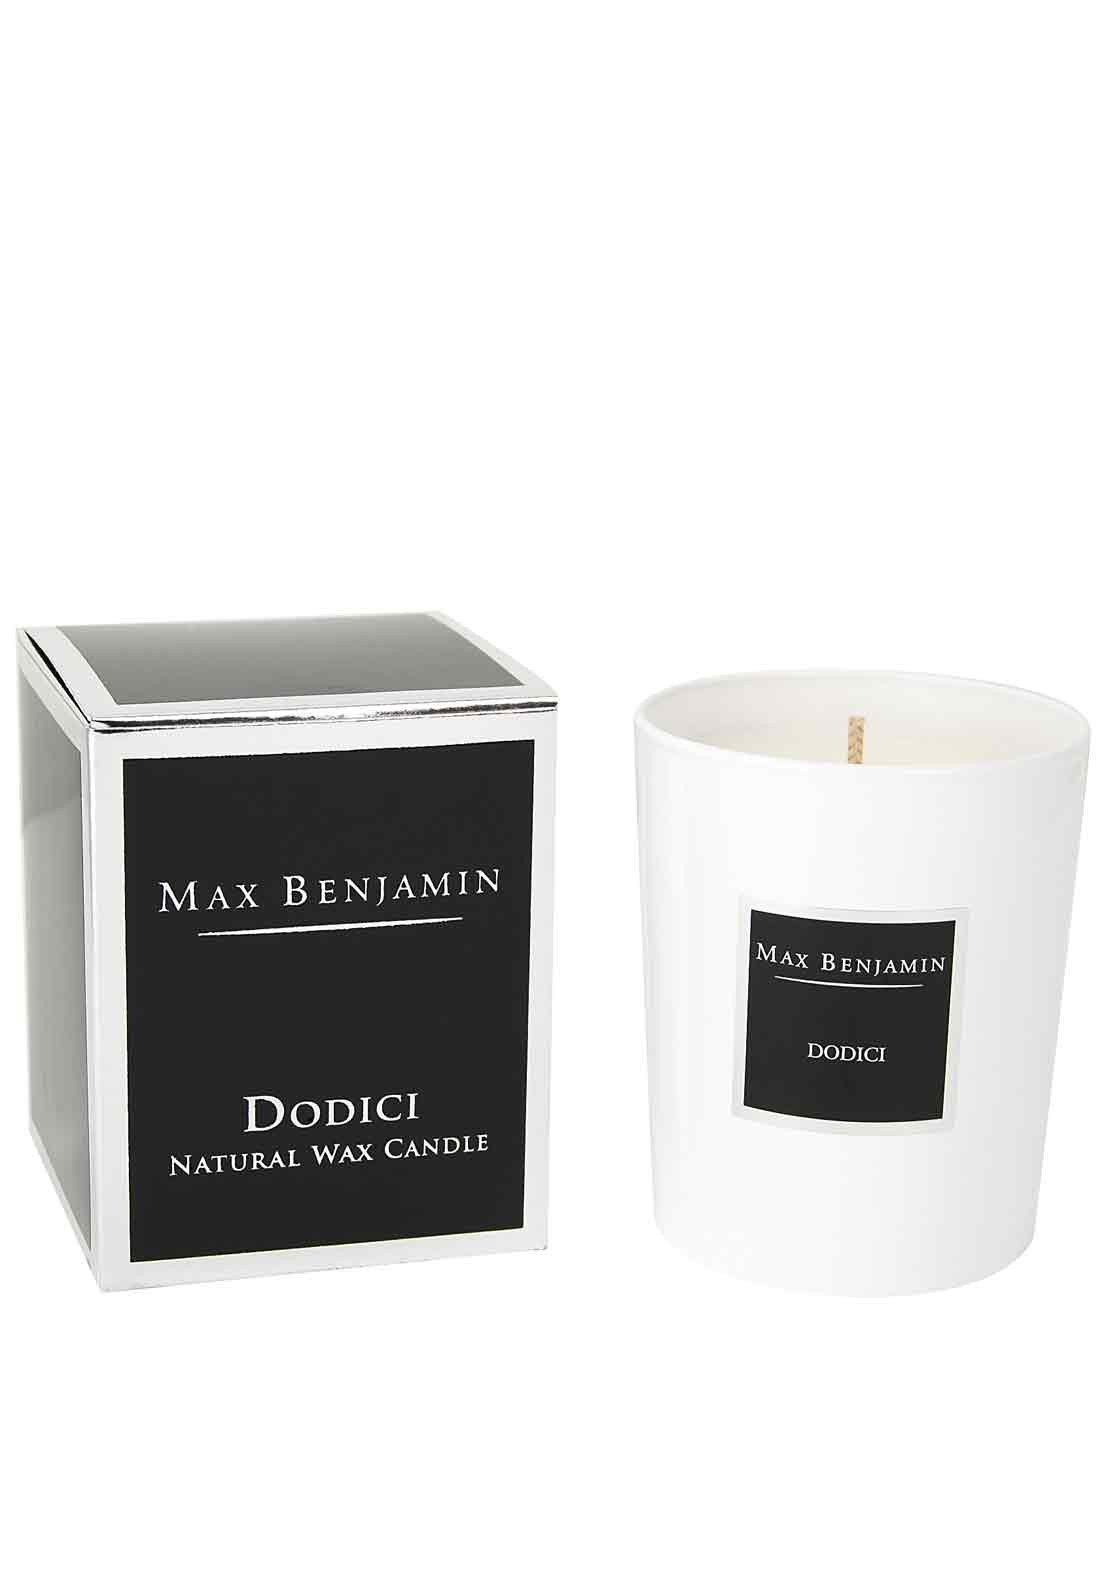 Max Benjamin Dodici Scented Candle